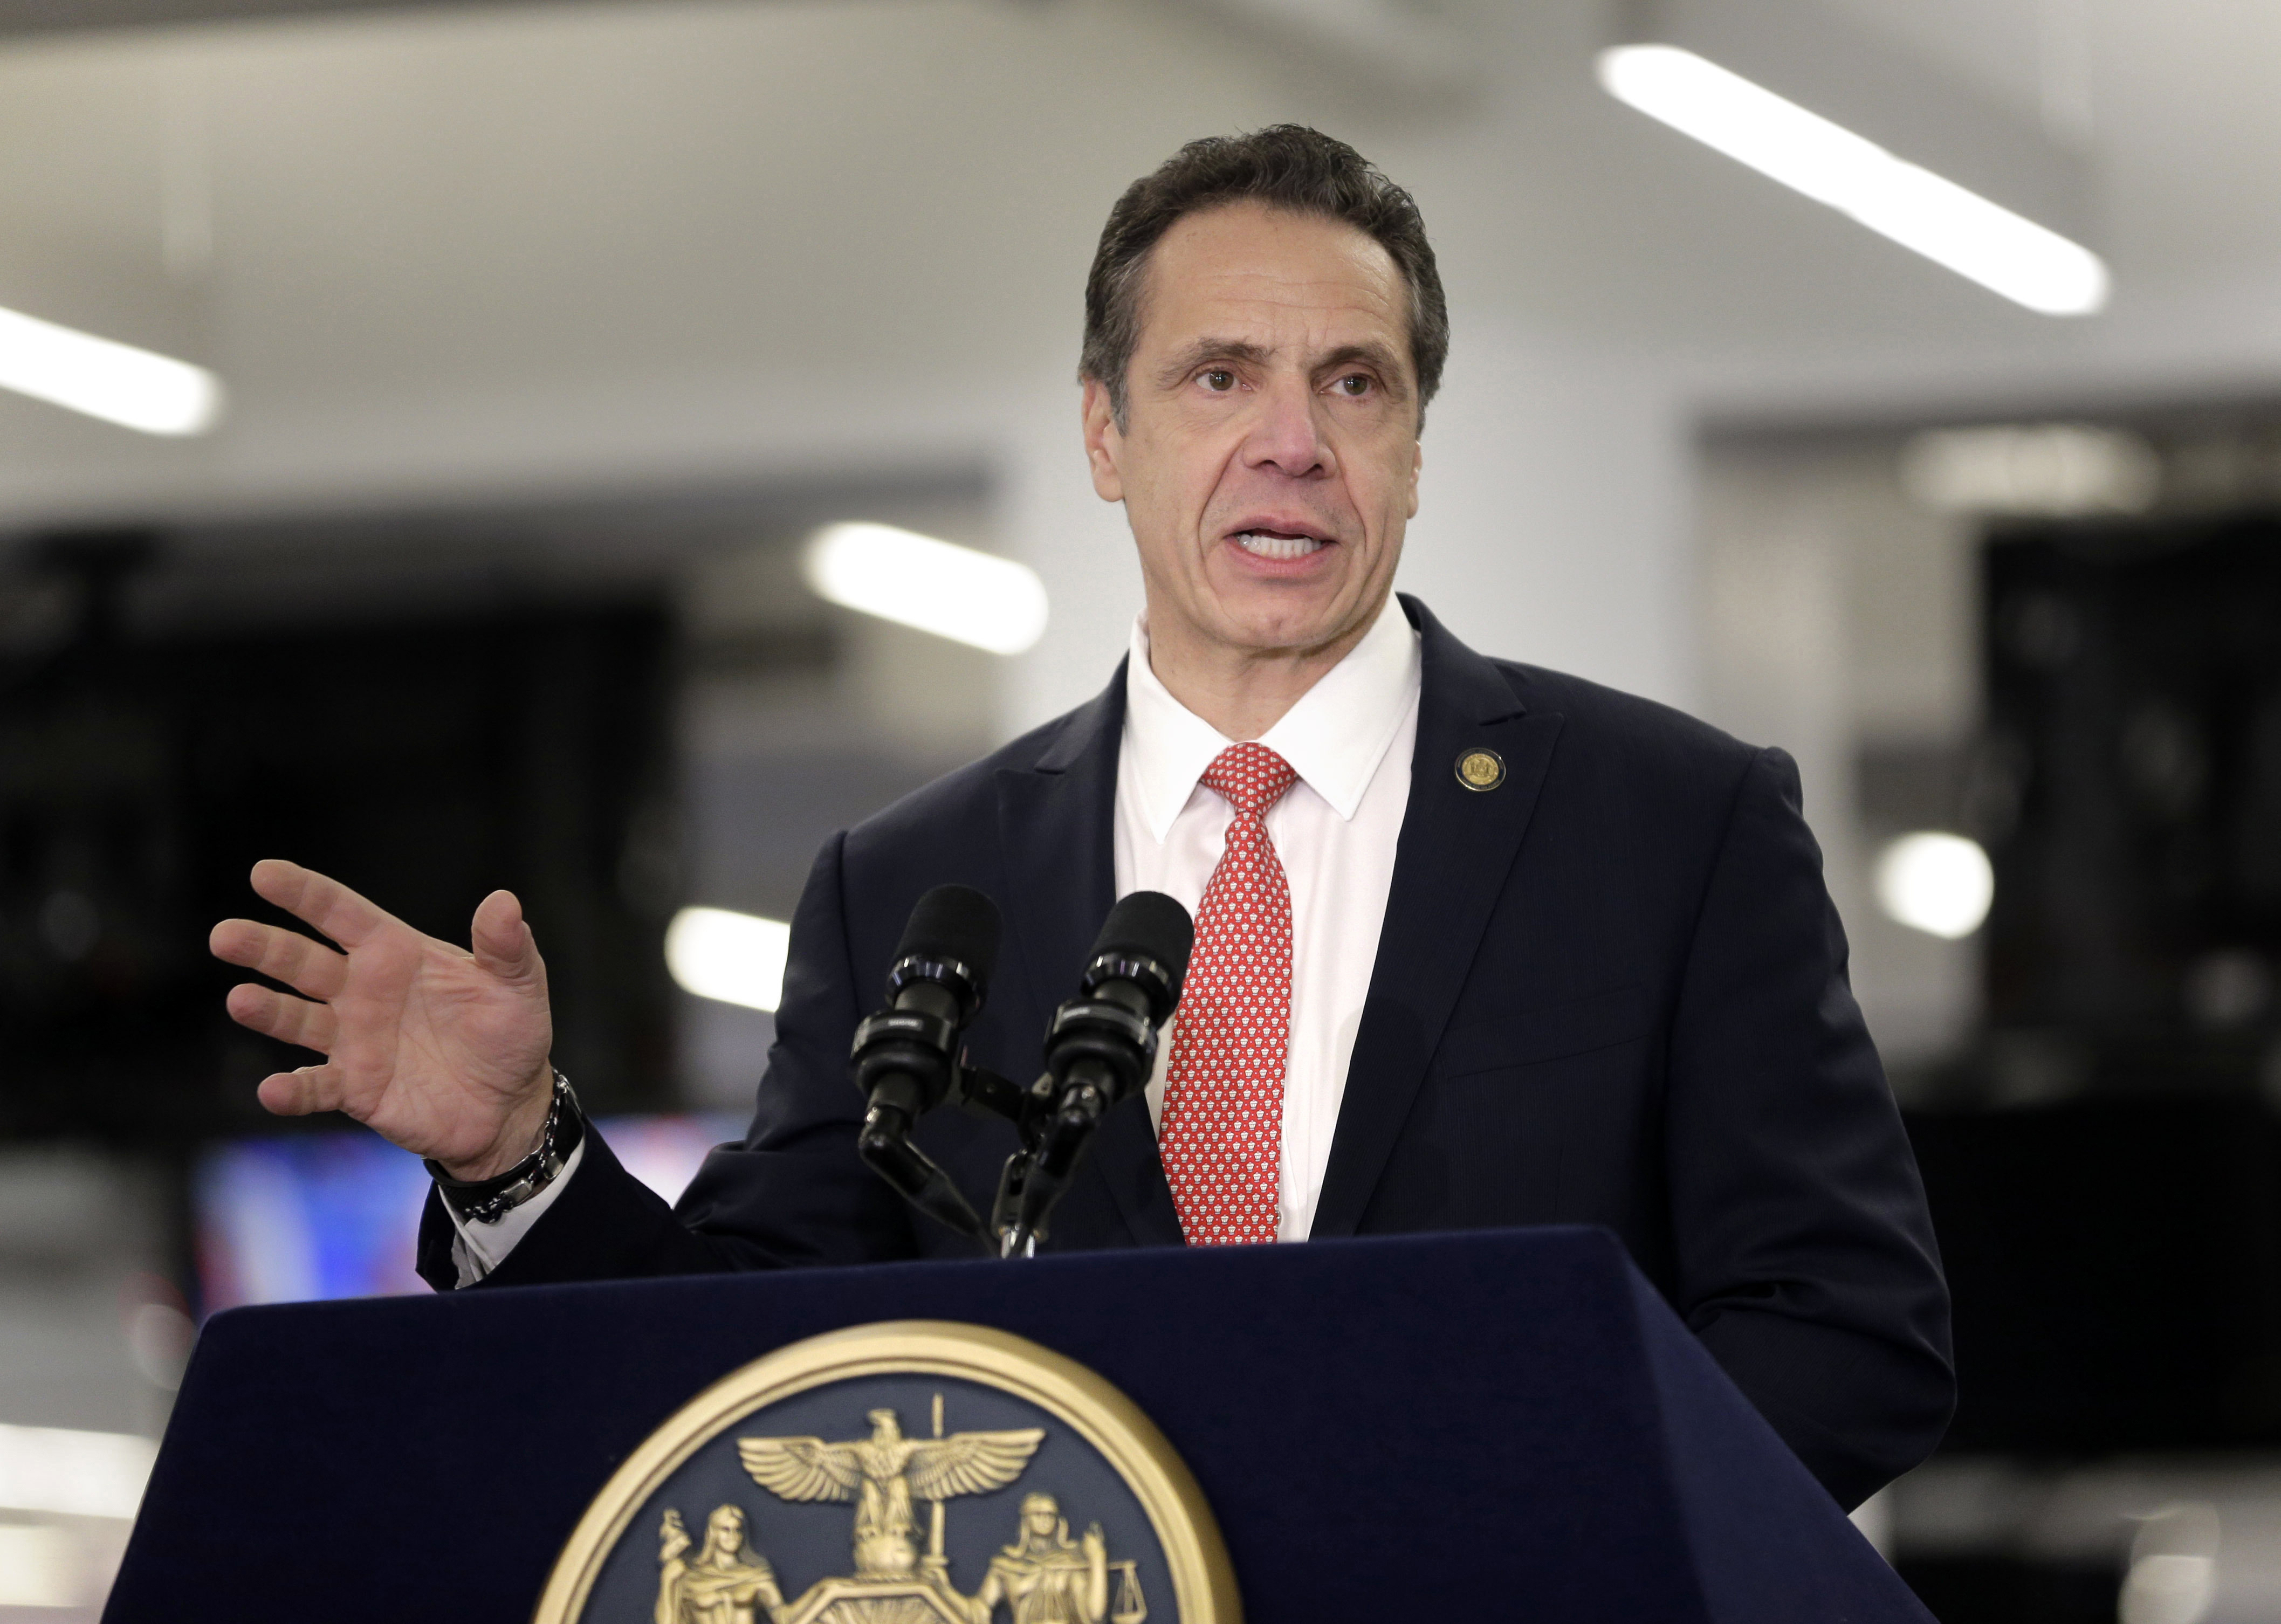 Andrew Cuomo, NY governor, says N-word during live radio interview